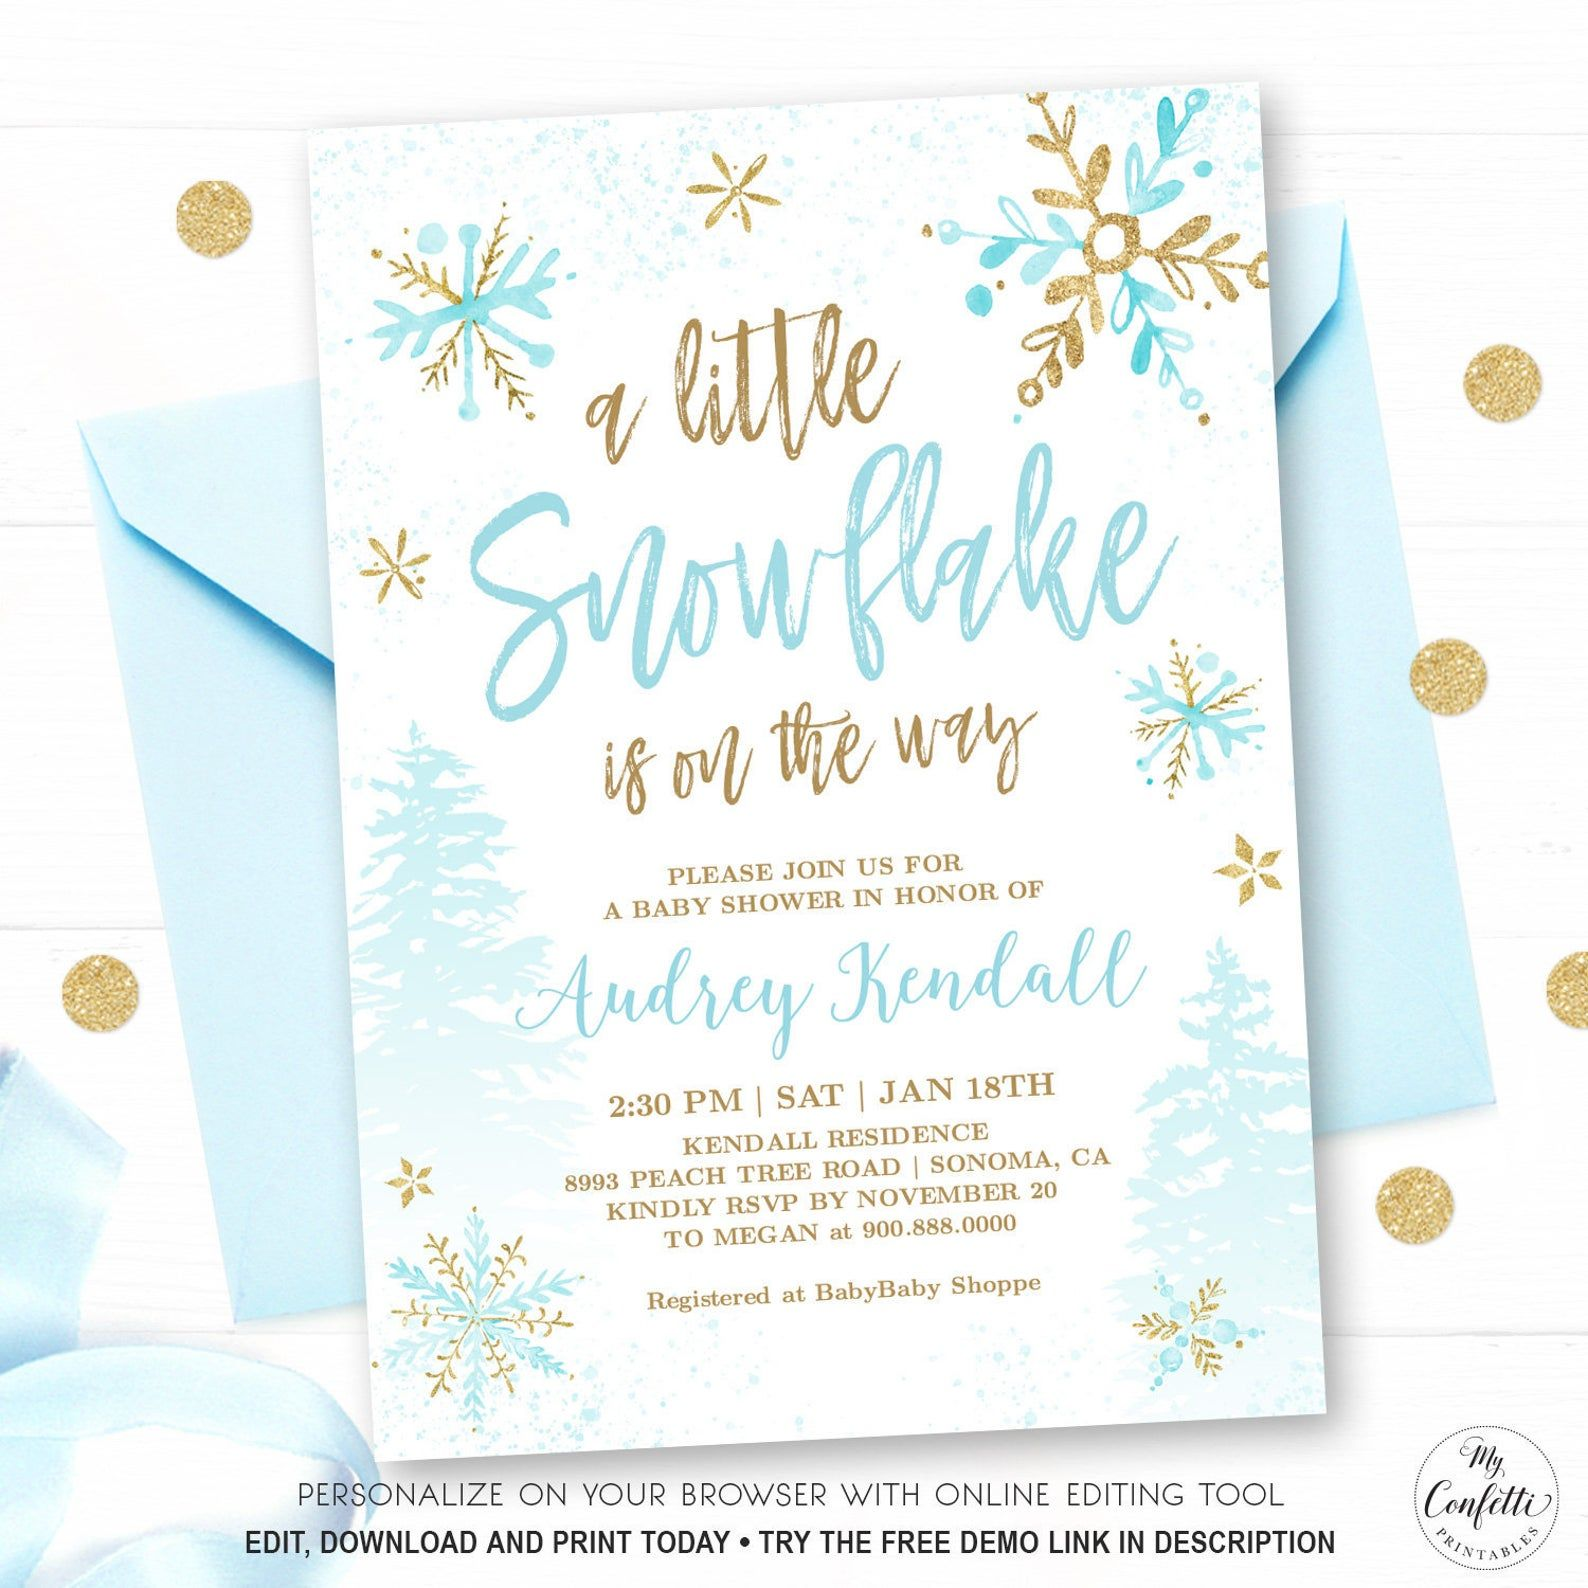 A Little Snowflake Is On The Way Winter Baby Shower Etsy Baby Shower Invitations For Boys Winter Baby Shower Invitations Winter Baby Shower Invitations Boy